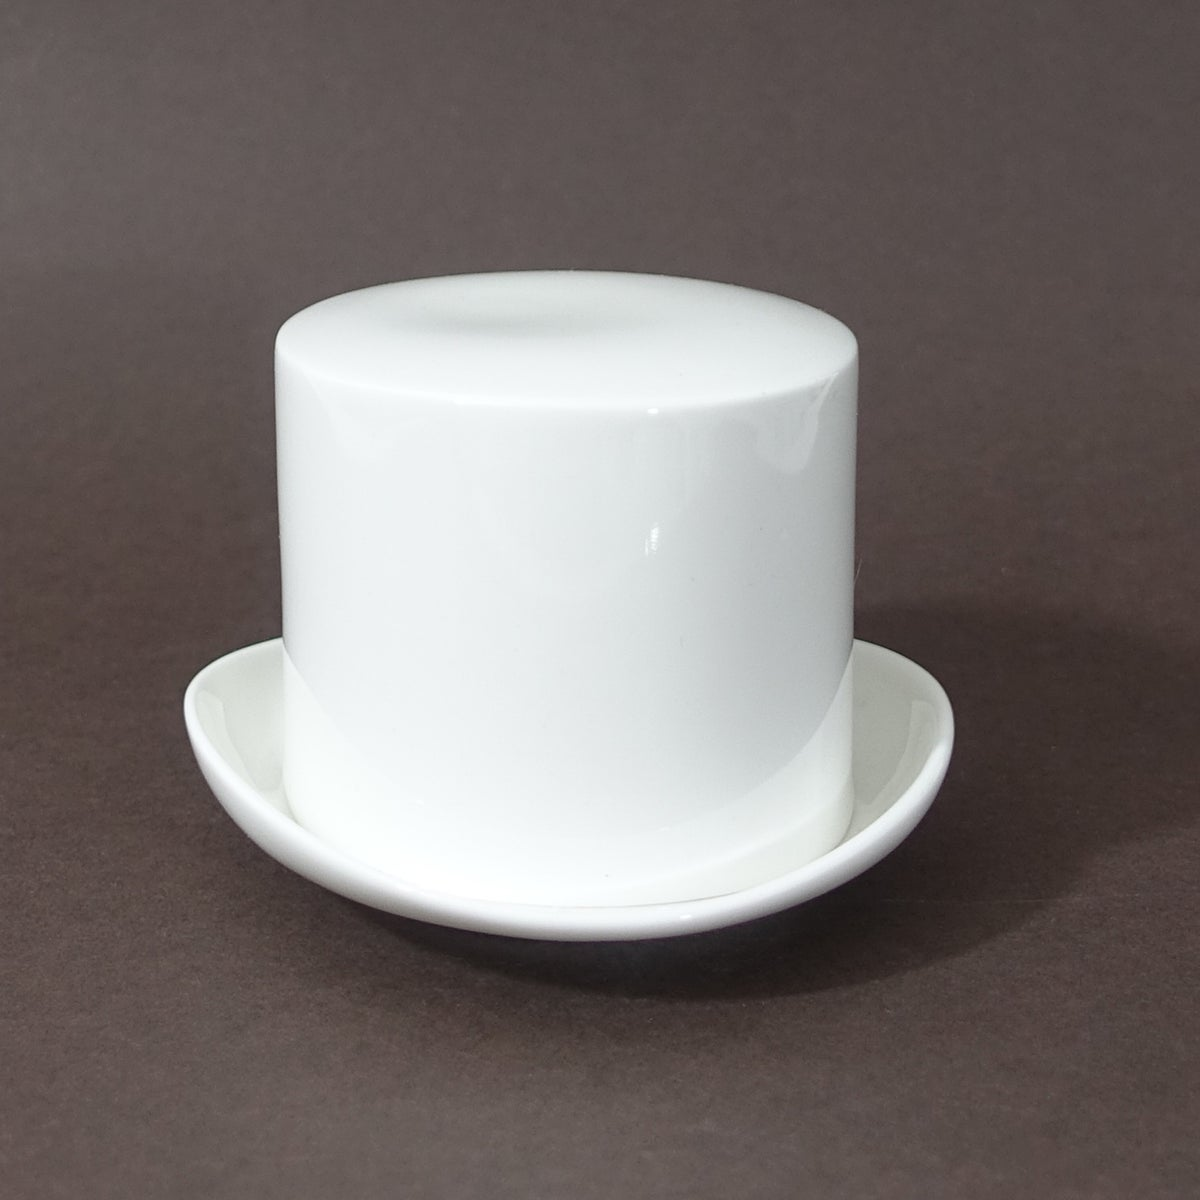 Image of Jacques White Sugar Bowl